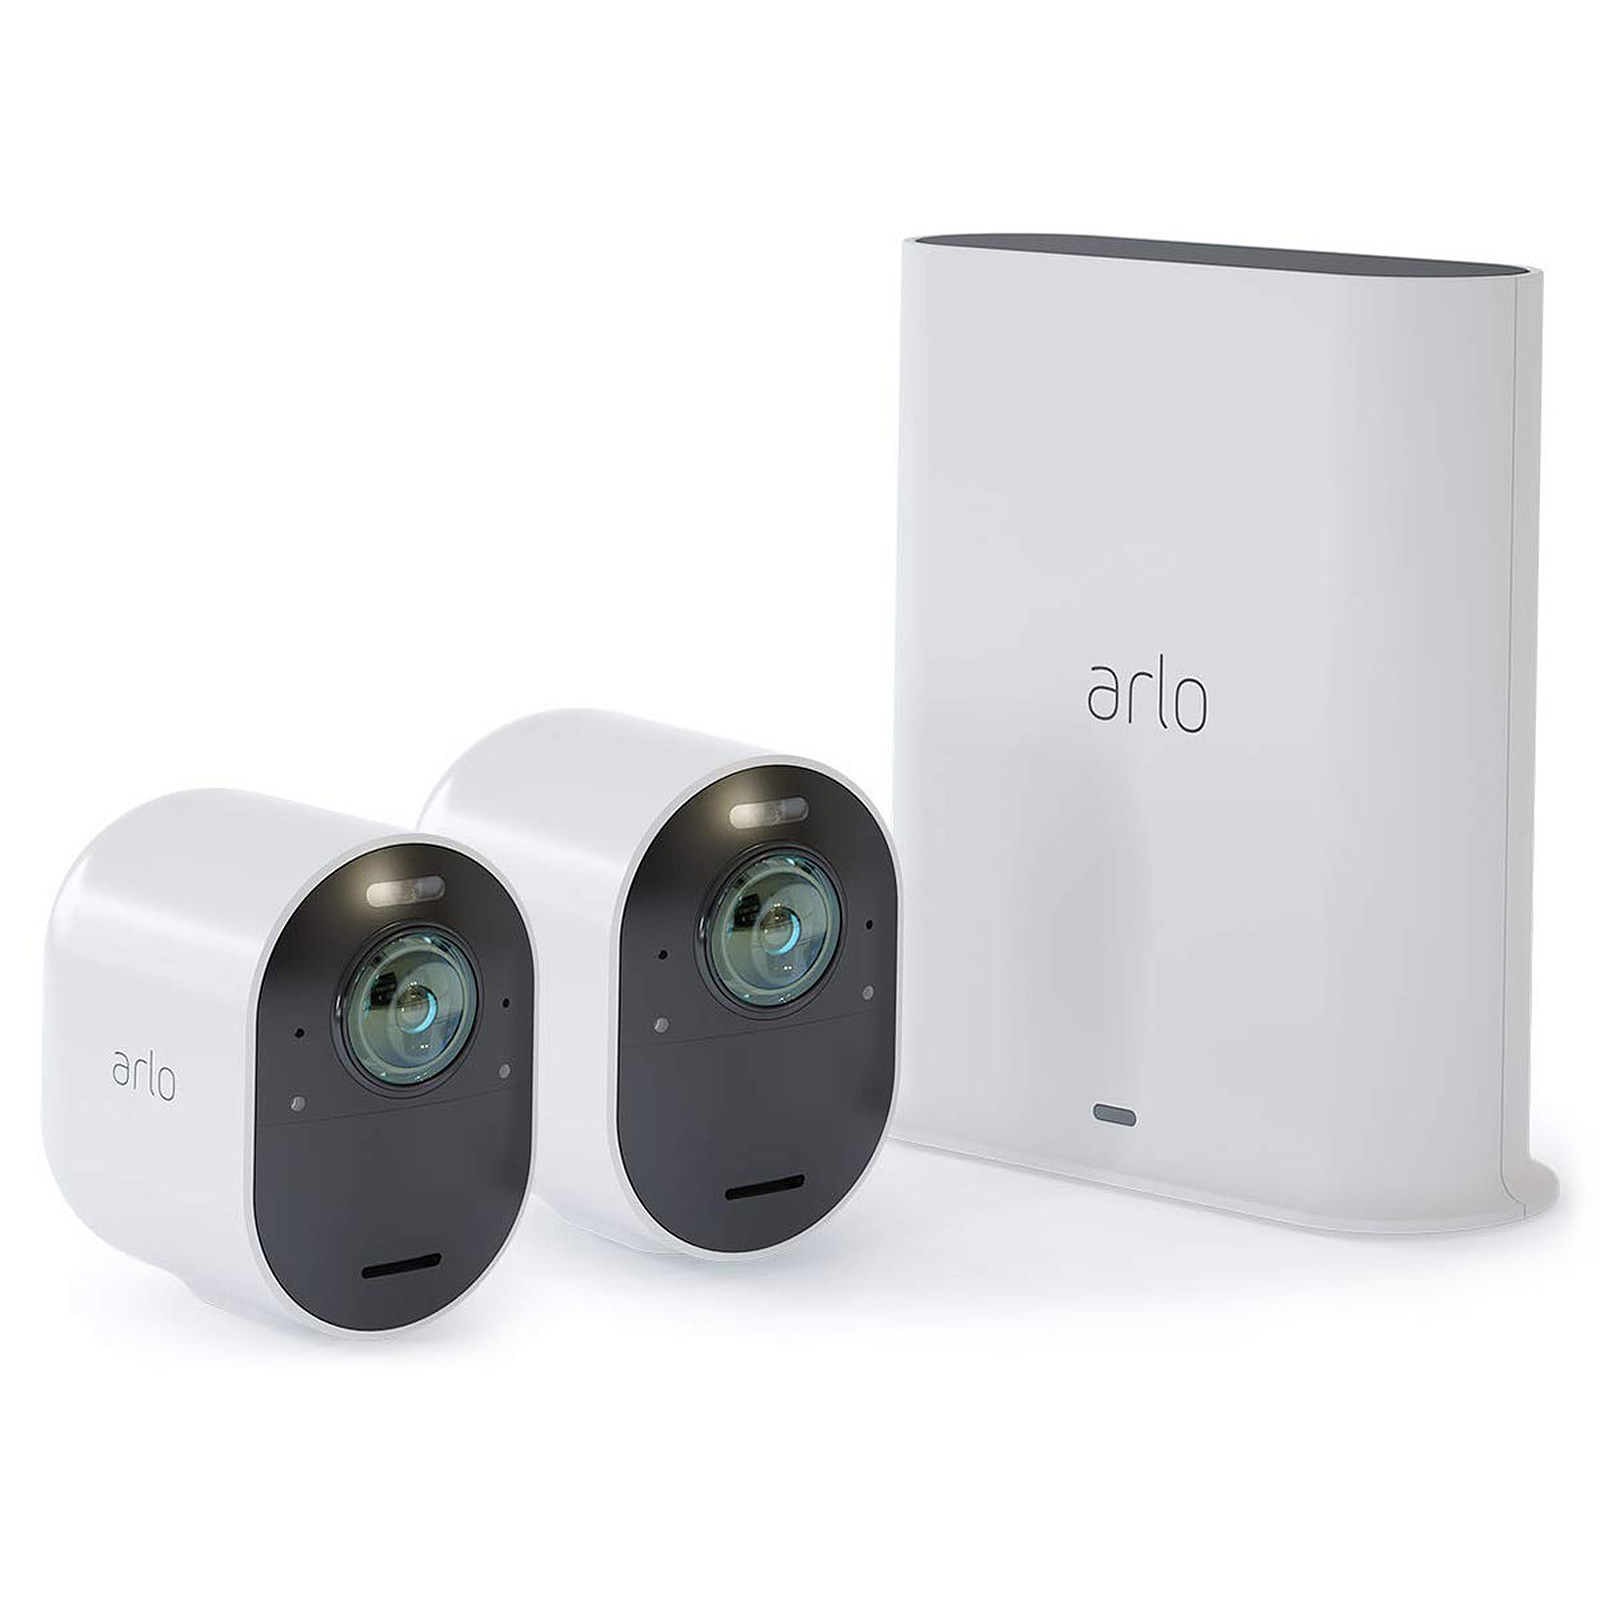 Camera Surveillance Exterieur Sans Fil Autonome Amazon Arlo Ultra Pack 2 Smart Caméra